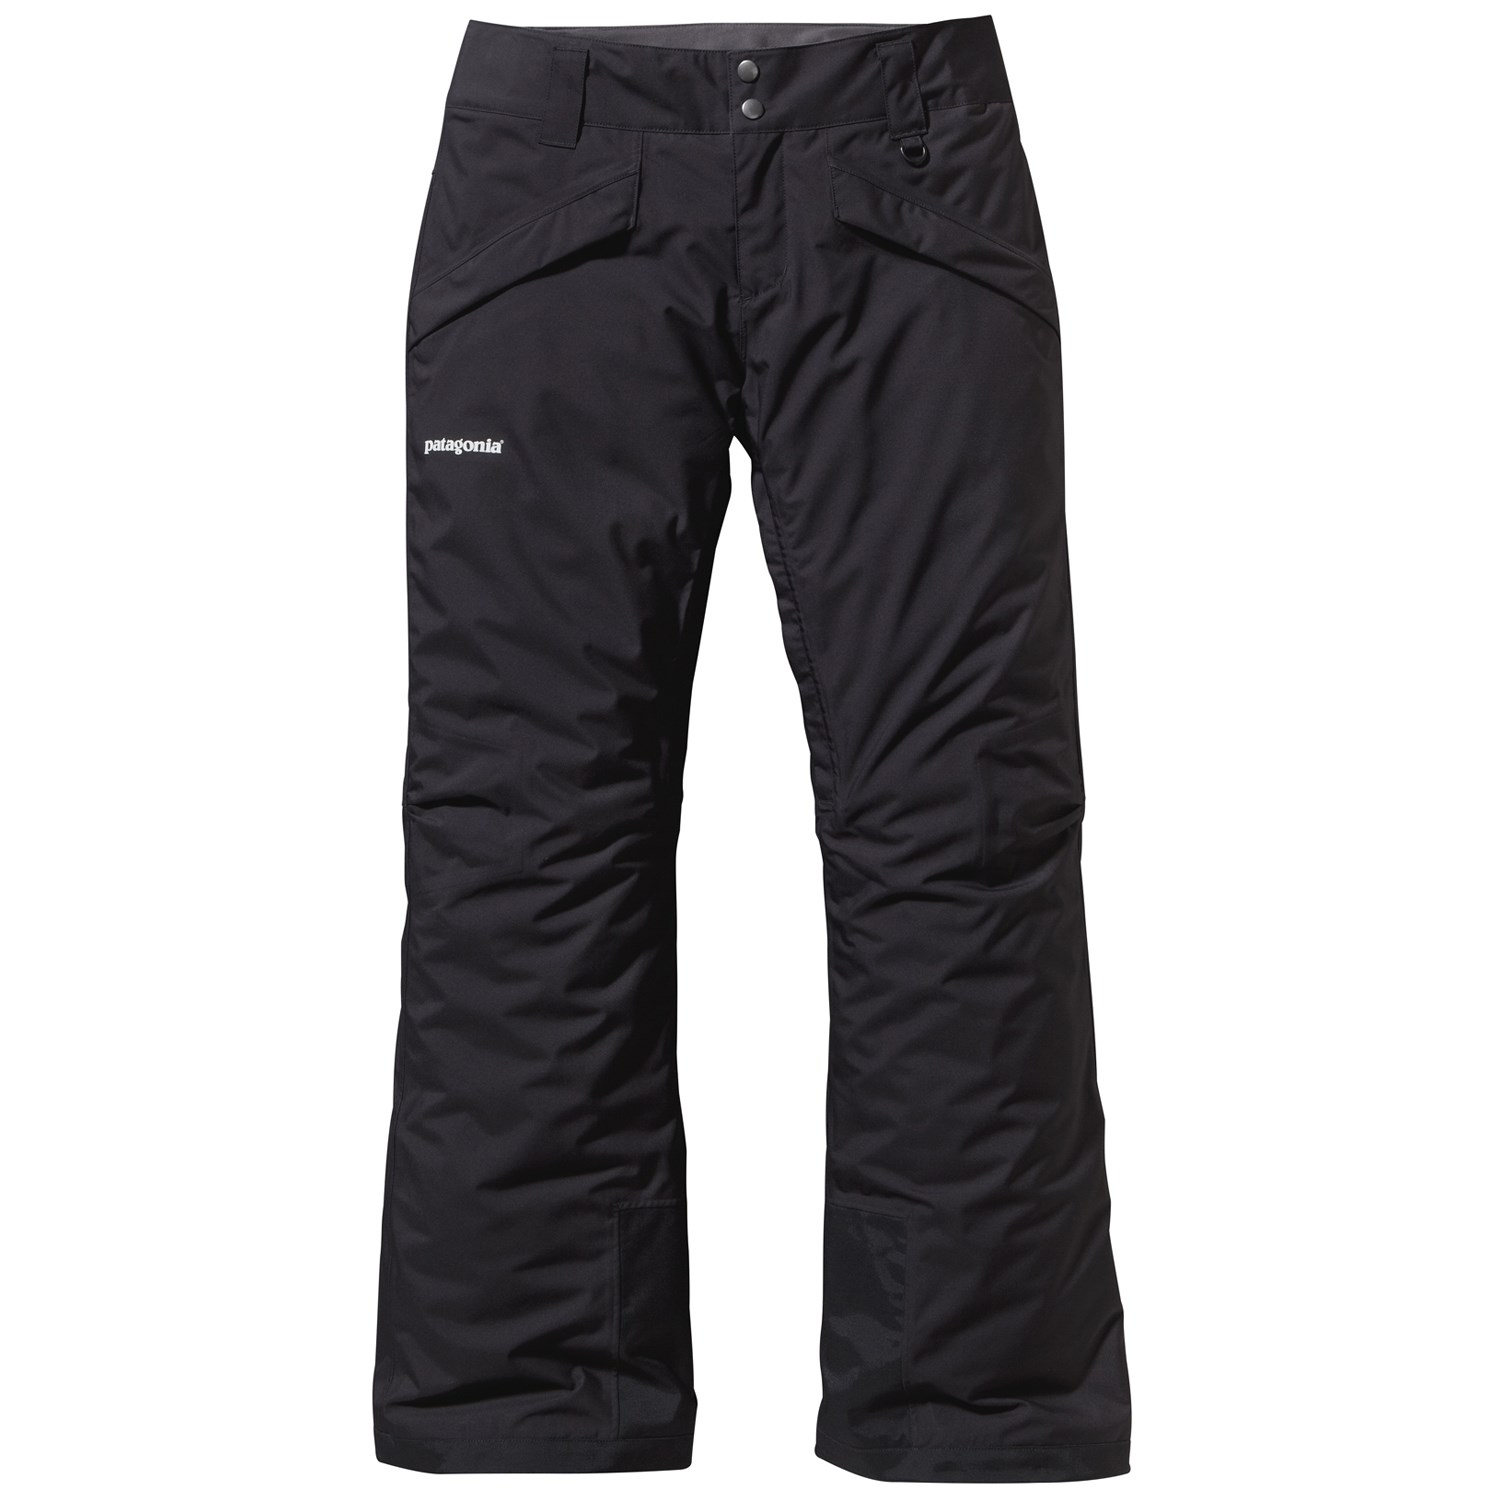 Patagonia Insulated Snowbelle Pants Women S Evo